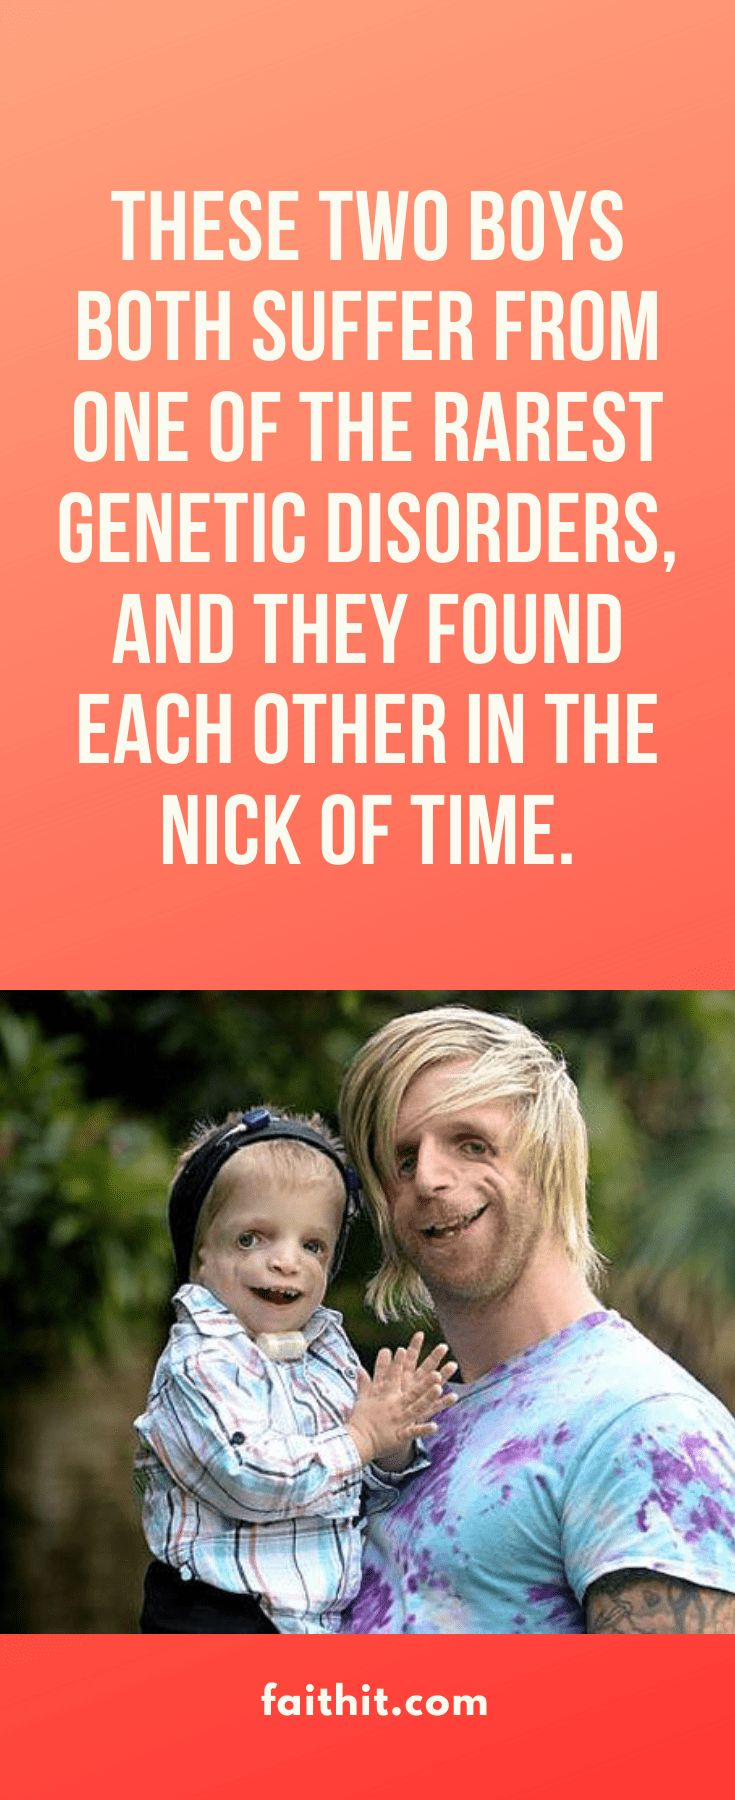 These Two Boys Both Suffer from One of the Rarest Genetic ...